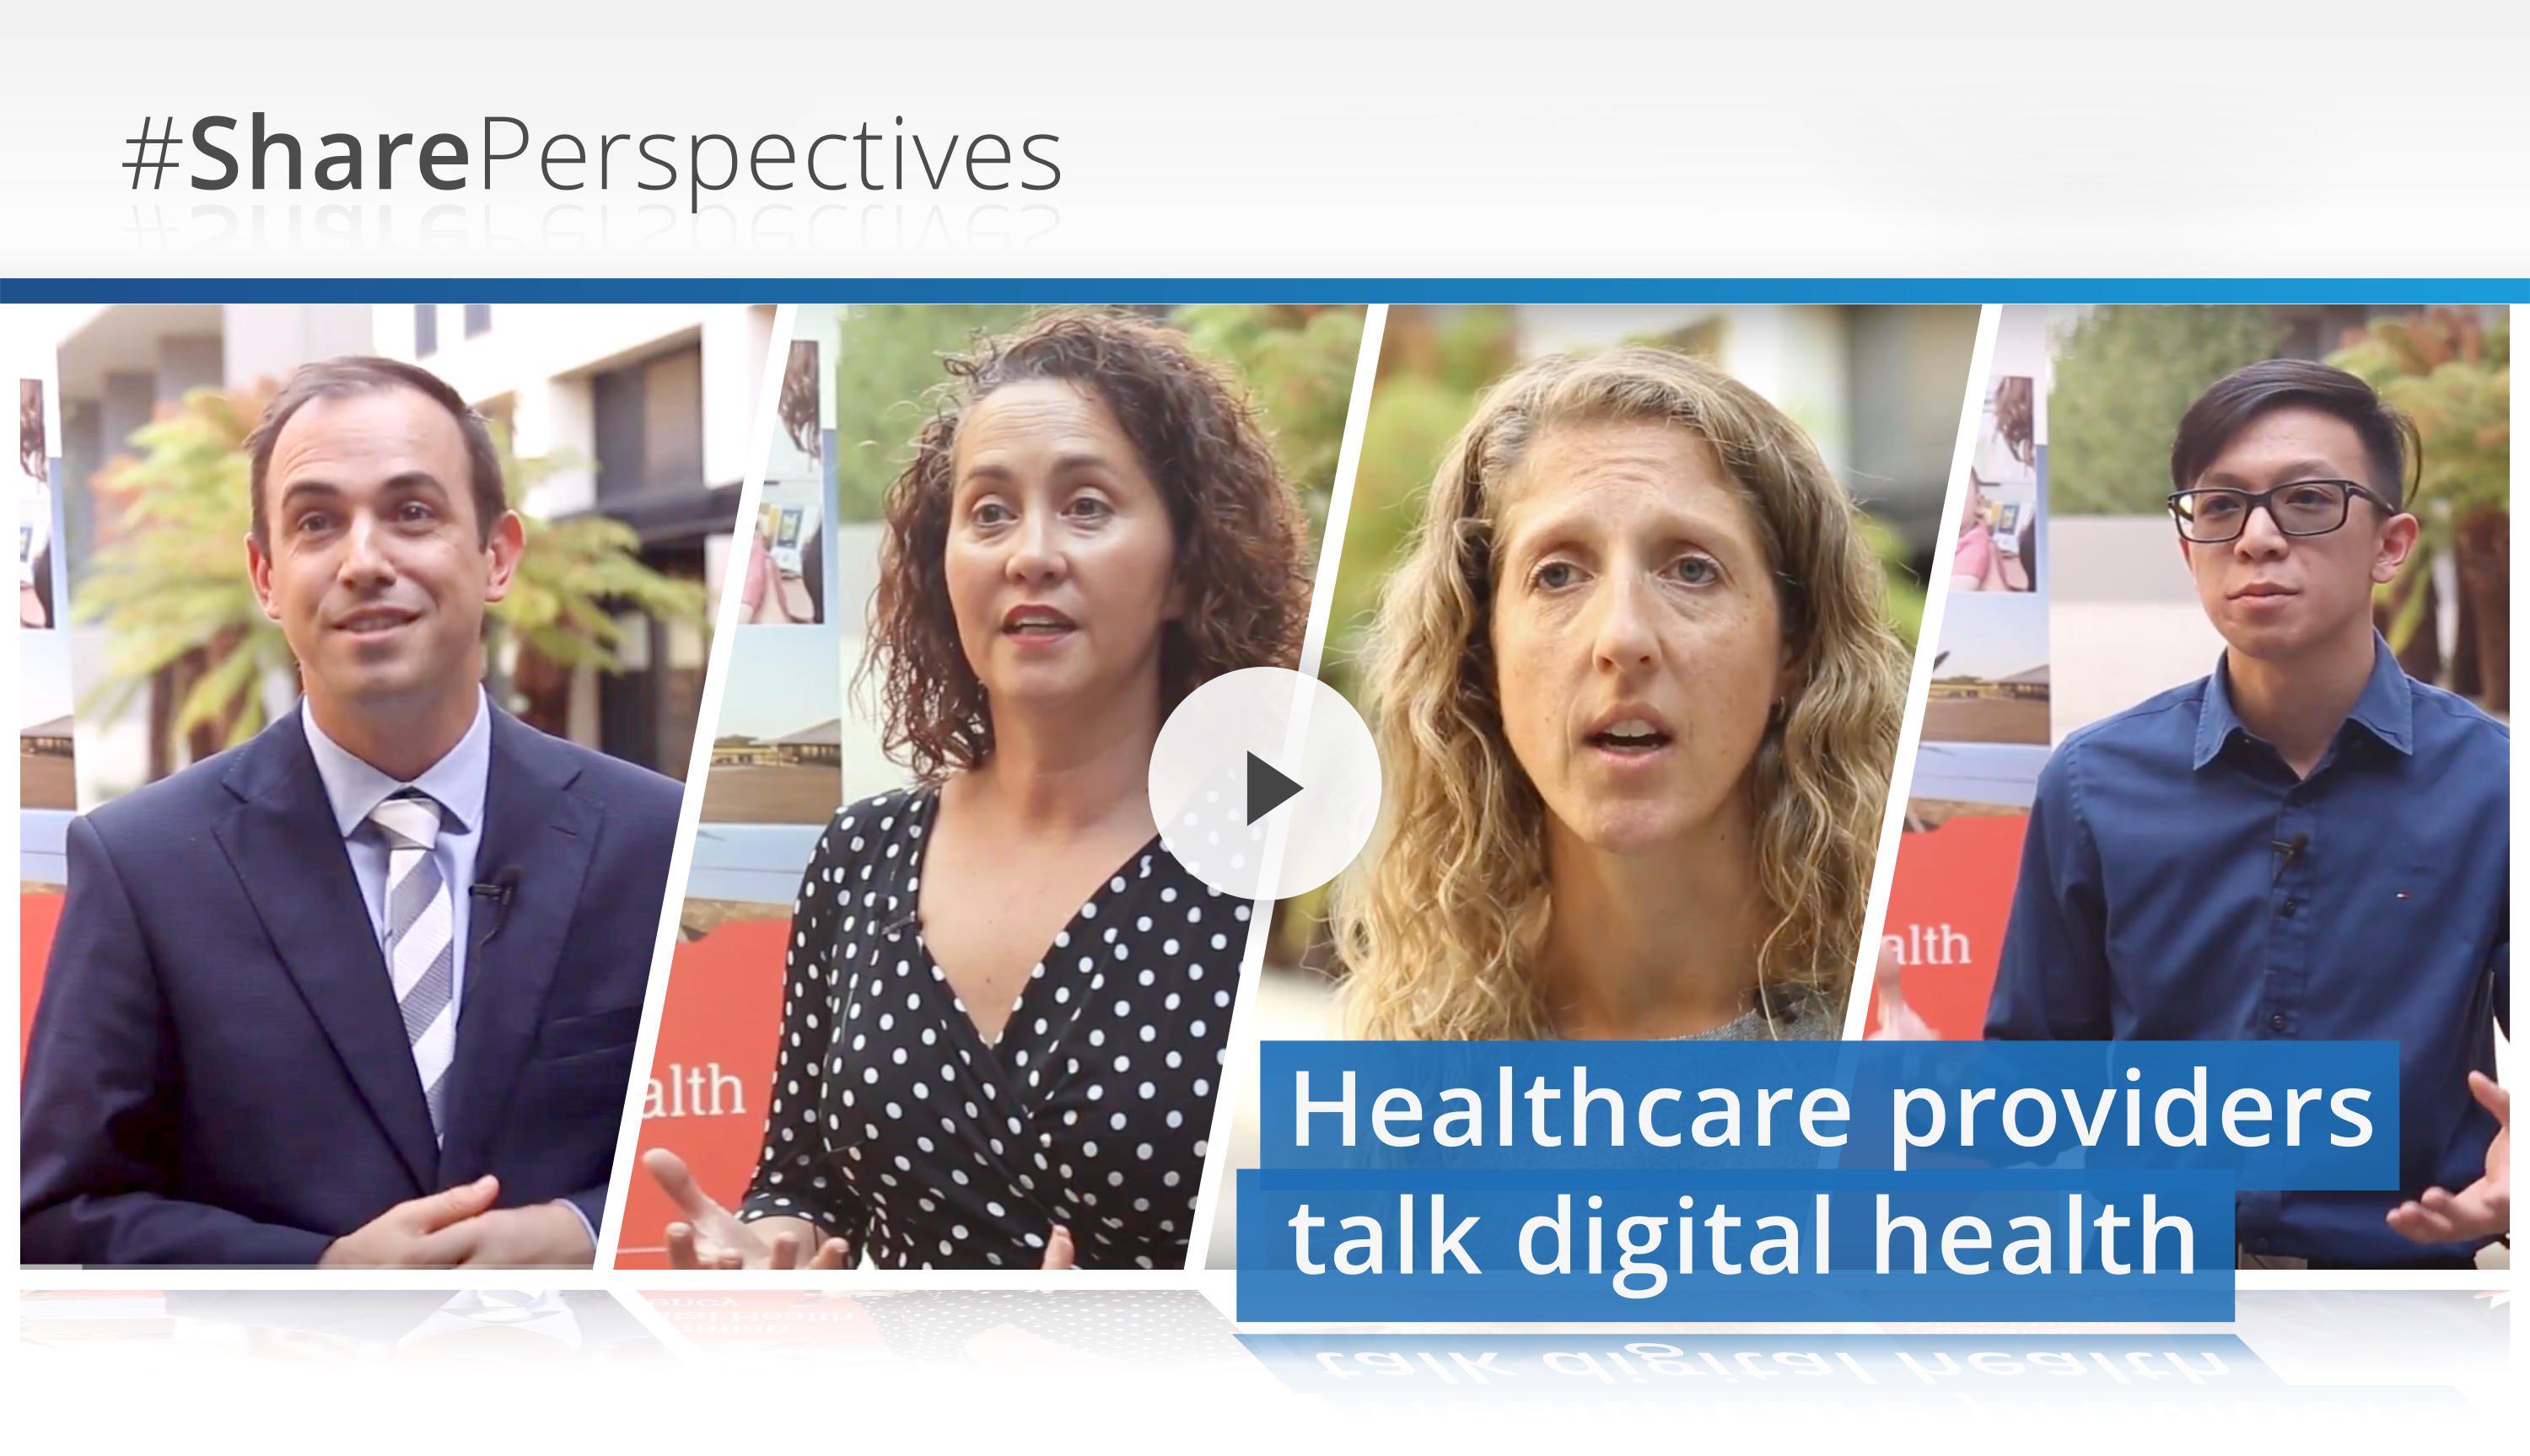 Healthcare providers talk digital health